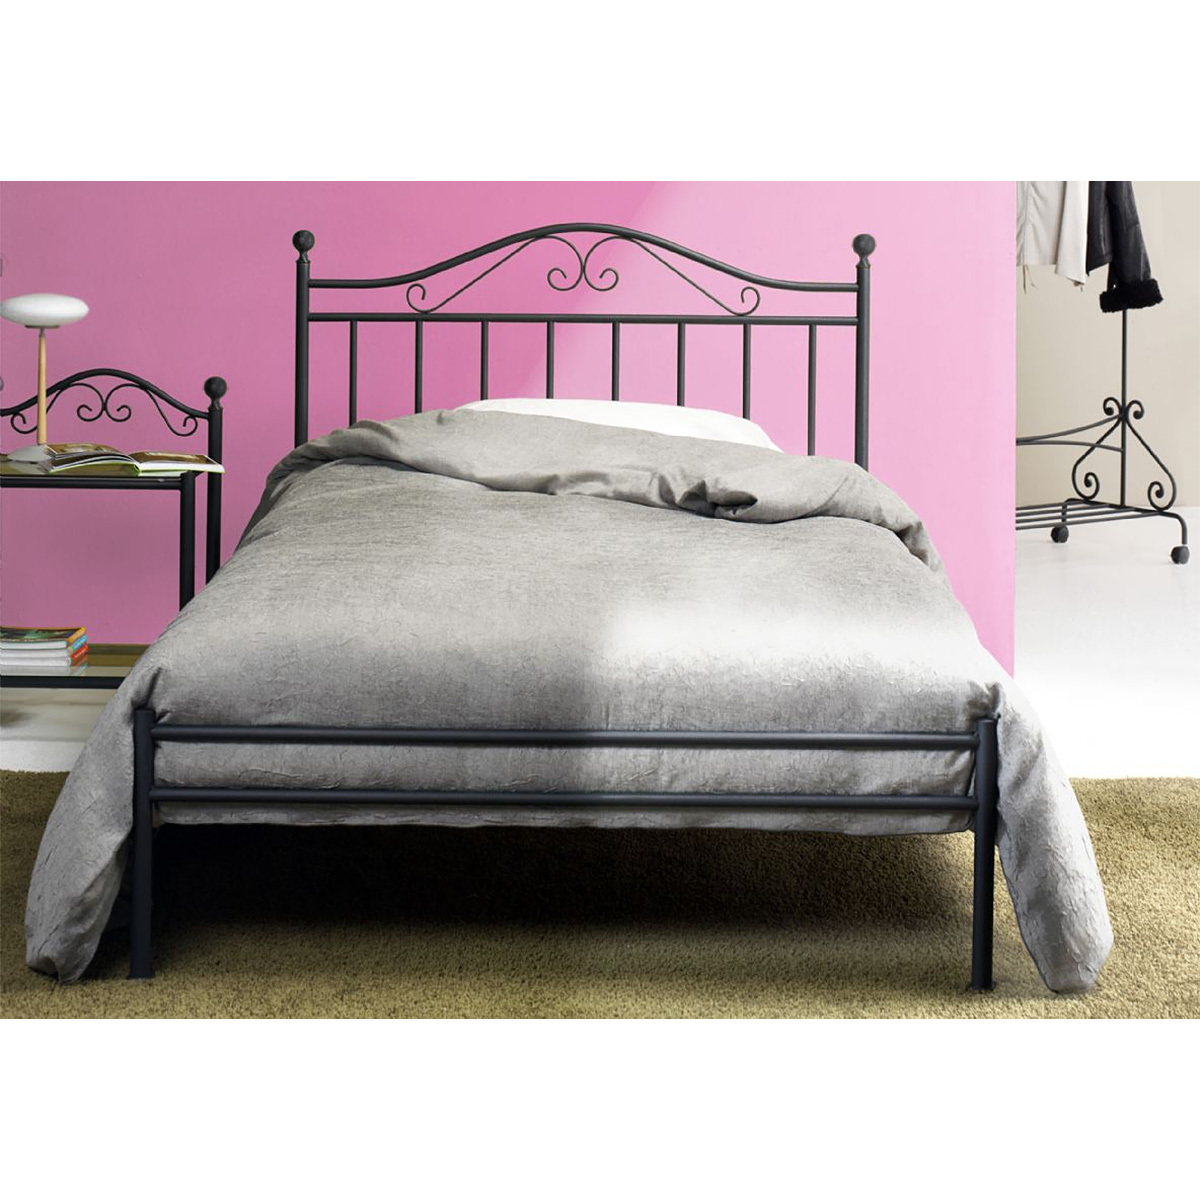 Photos 3: Cosatto Double bed in iron GIUSY